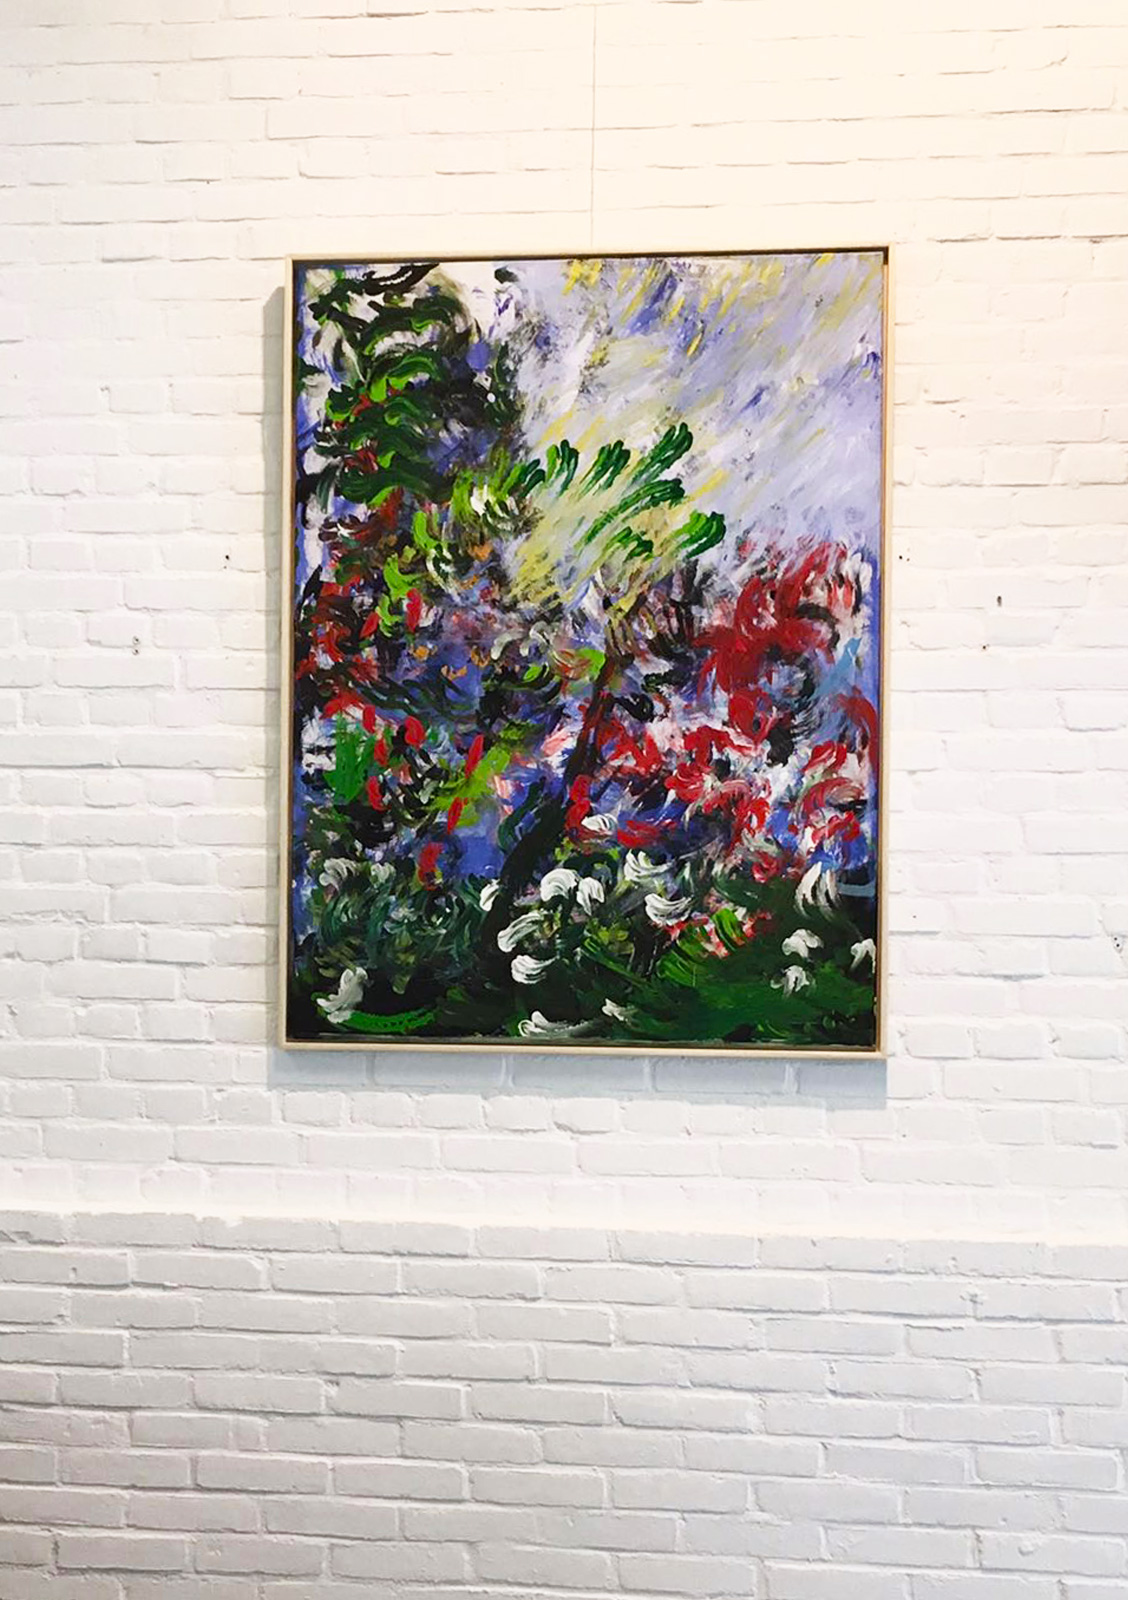 Laura Medden's painting 'Botanical Surge' hanging at the Open Ateliers Oost exhibition at the SBK Gallery in Amsterdam.